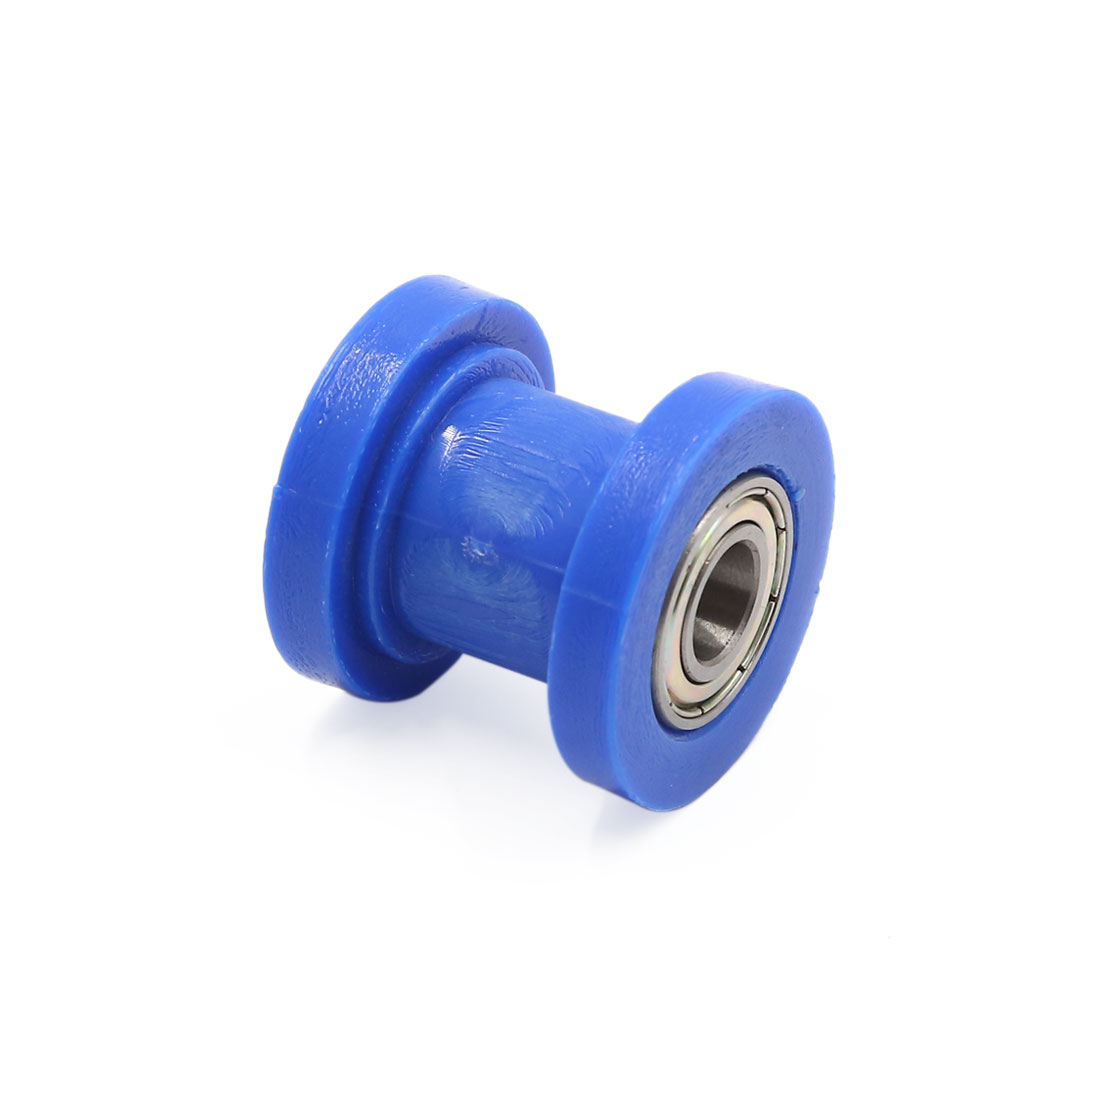 10mm Hole Chain Roller Pulley Slider Tensioner Wheel Guide Blue for Motorcycle - image 1 de 3